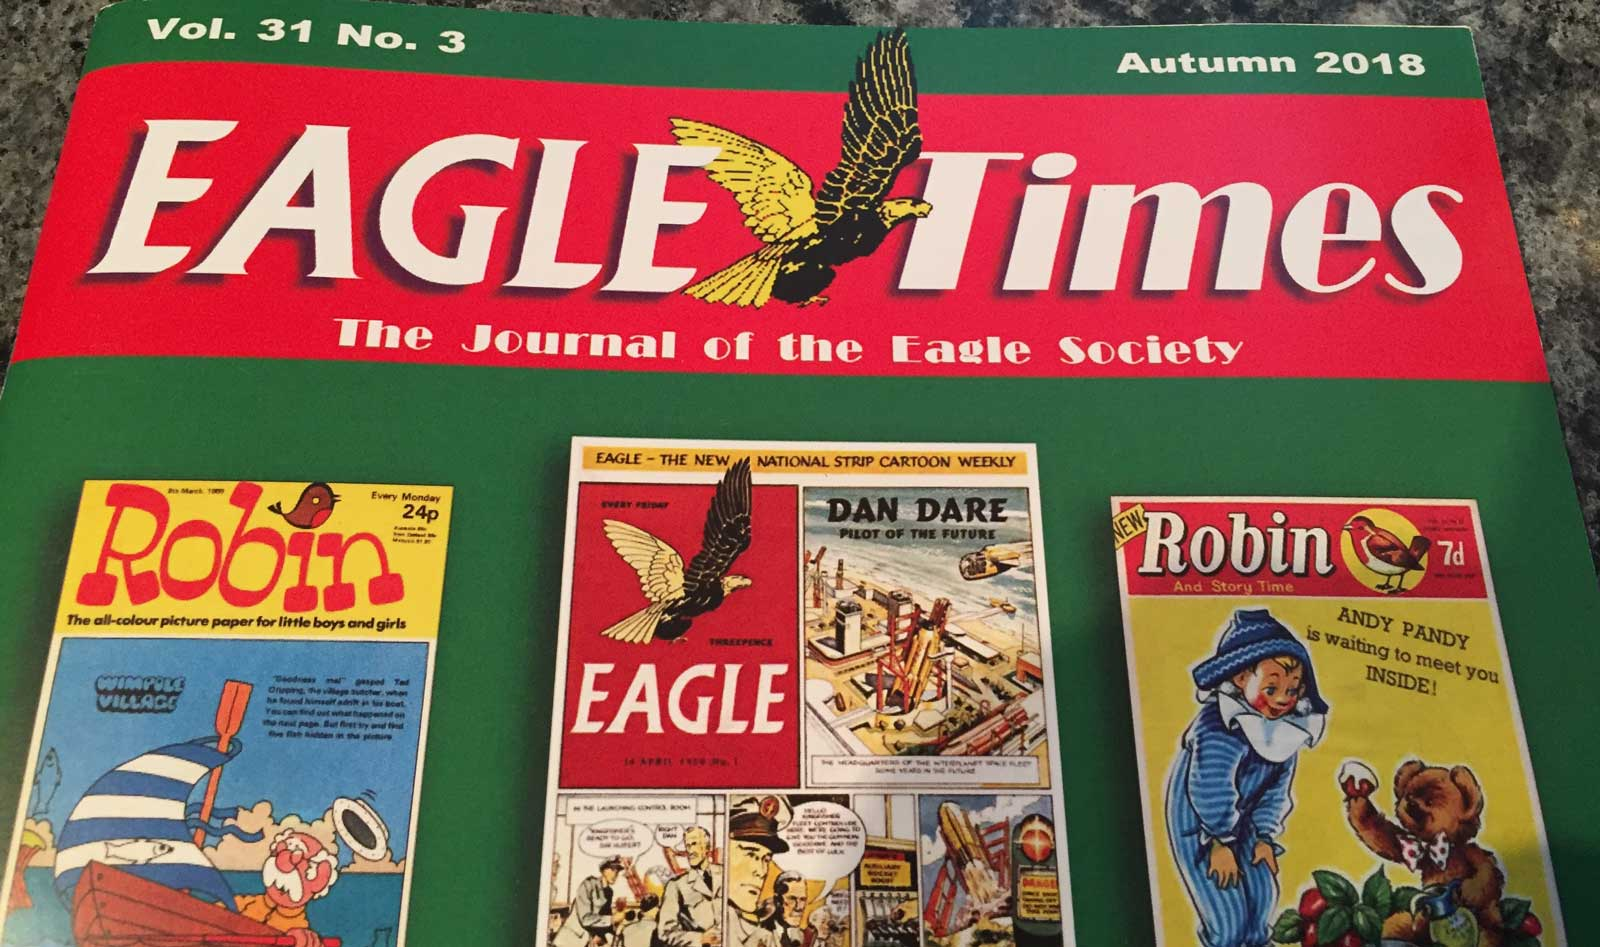 Eagle Times v.31 no.3 (Autumn 2018) SNIP